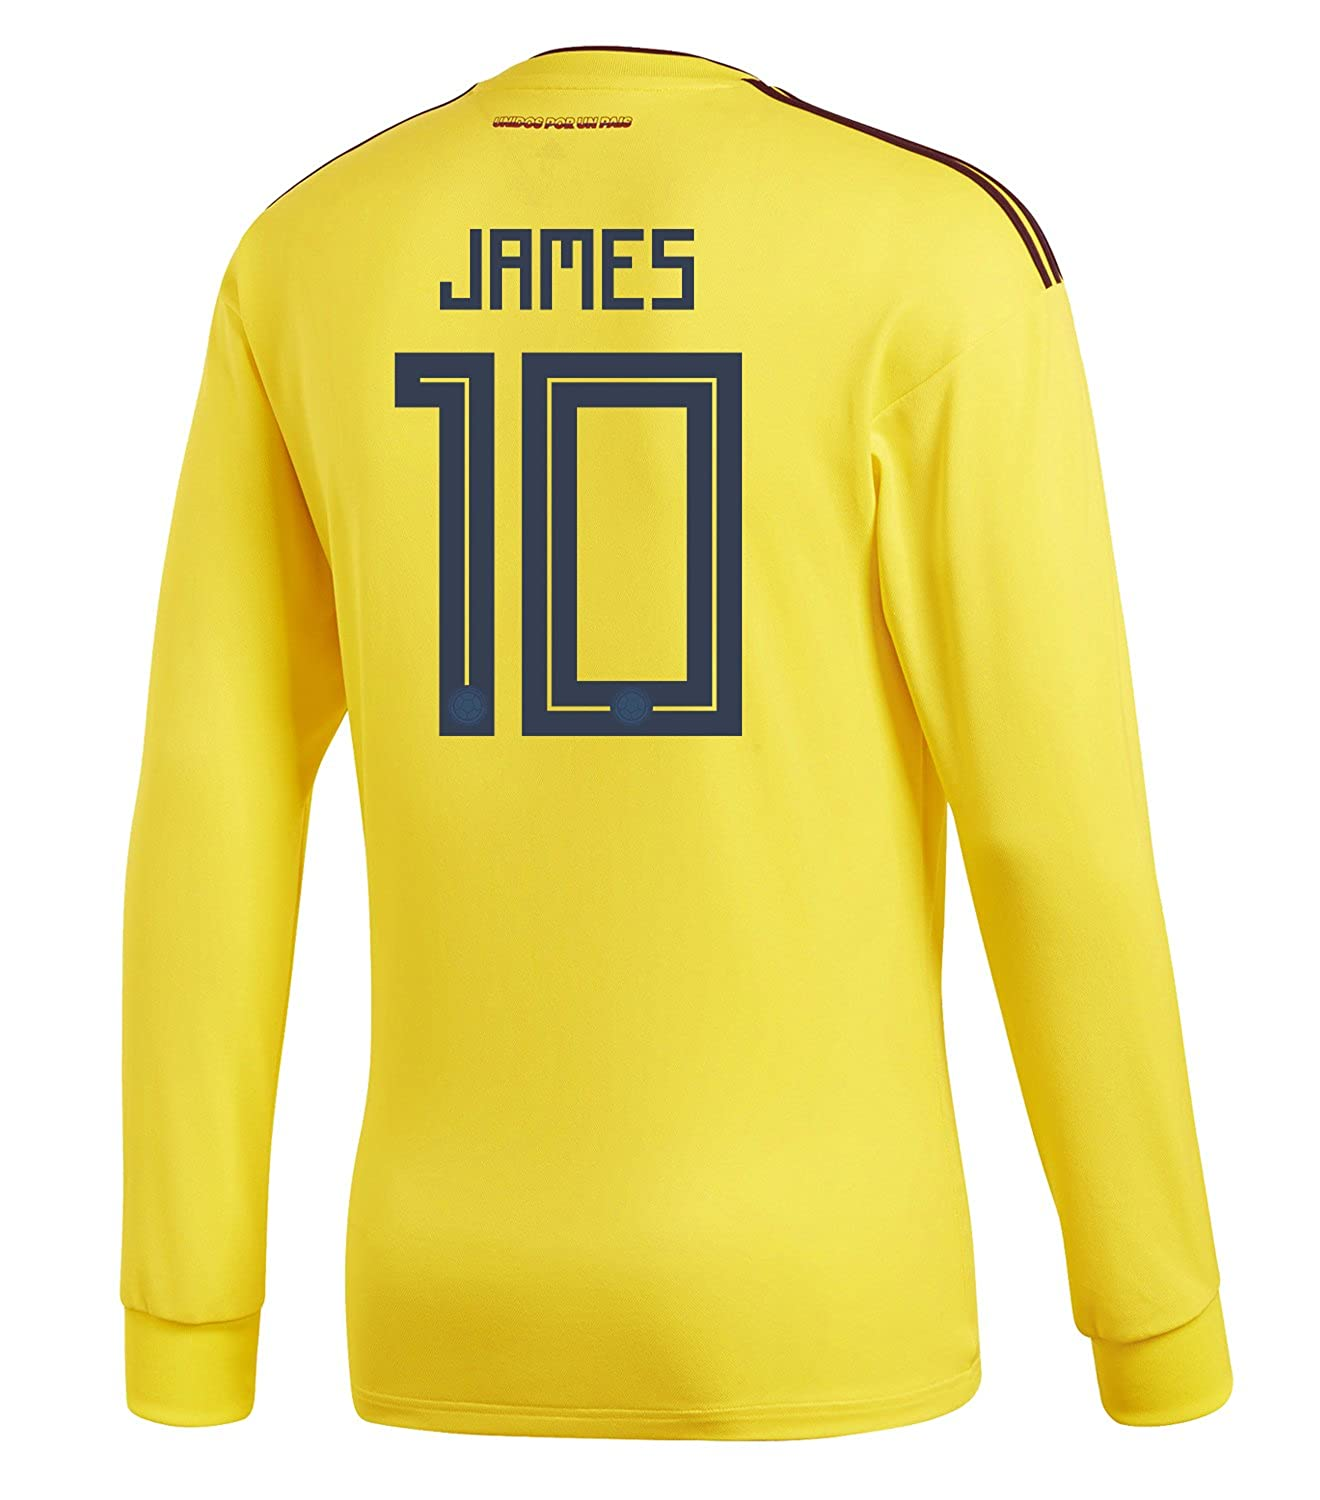 adidas Mens JAMES #10 Colombia Home Long Sleeve Soccer Jersey World Cup 2018 /サッカー ユニフォーム ハメス 背番号 10 コロンビア ホーム用 長袖 B07B8DXQQY US X-Large